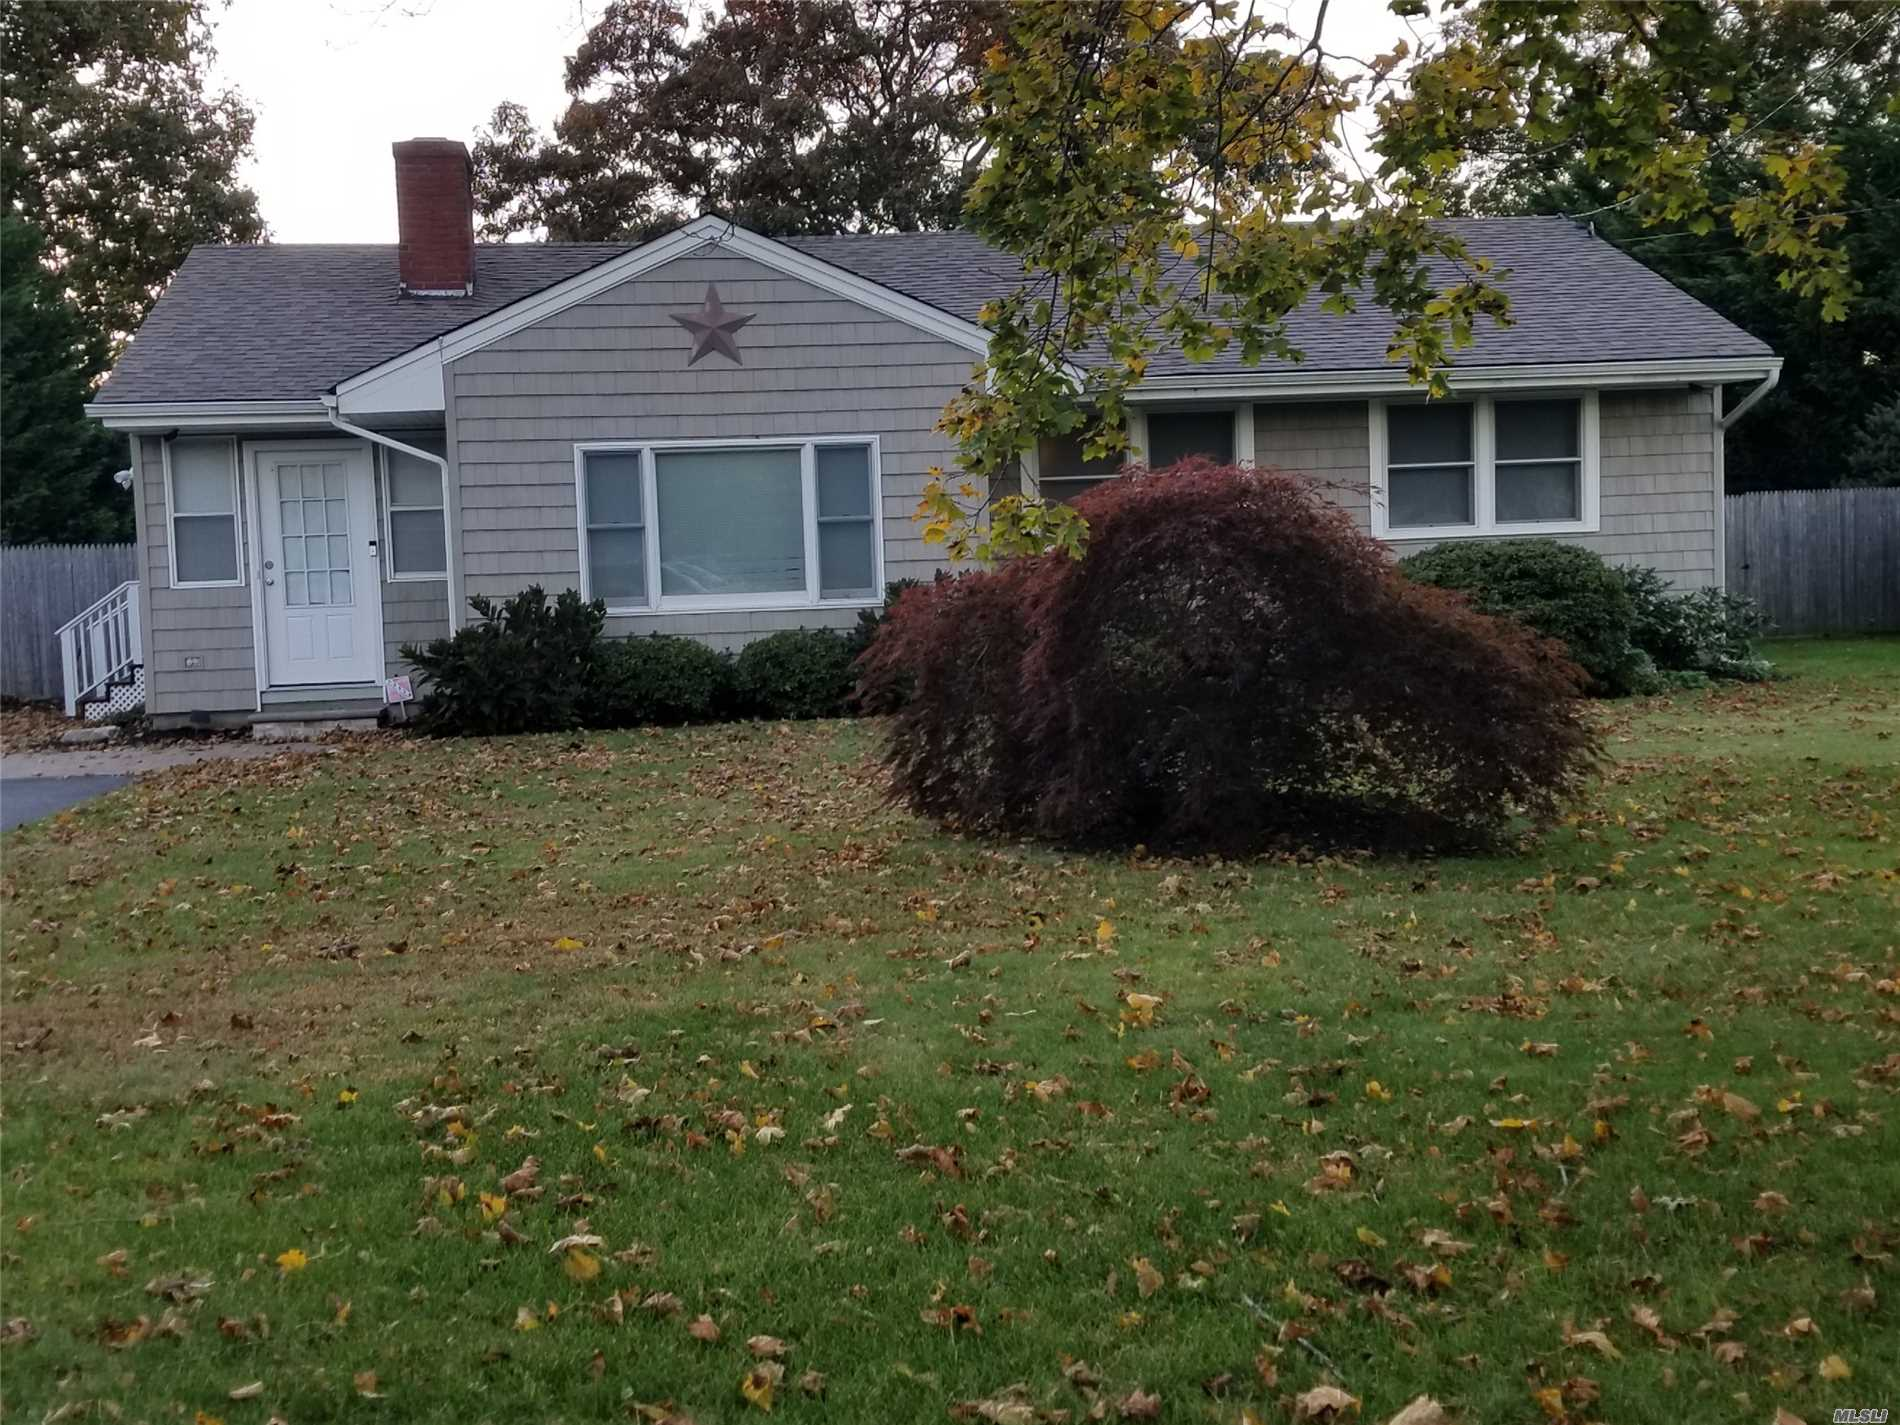 Spacious 3 Bedroom Ranch W/Dinning Rm, Living Rm W/Fp/ Alarm System, Oak Floors, Finished Bsmt, Deck, Patio Gas Fire Pit, Fenced Yard. Excellent Condition. Low Taxes!